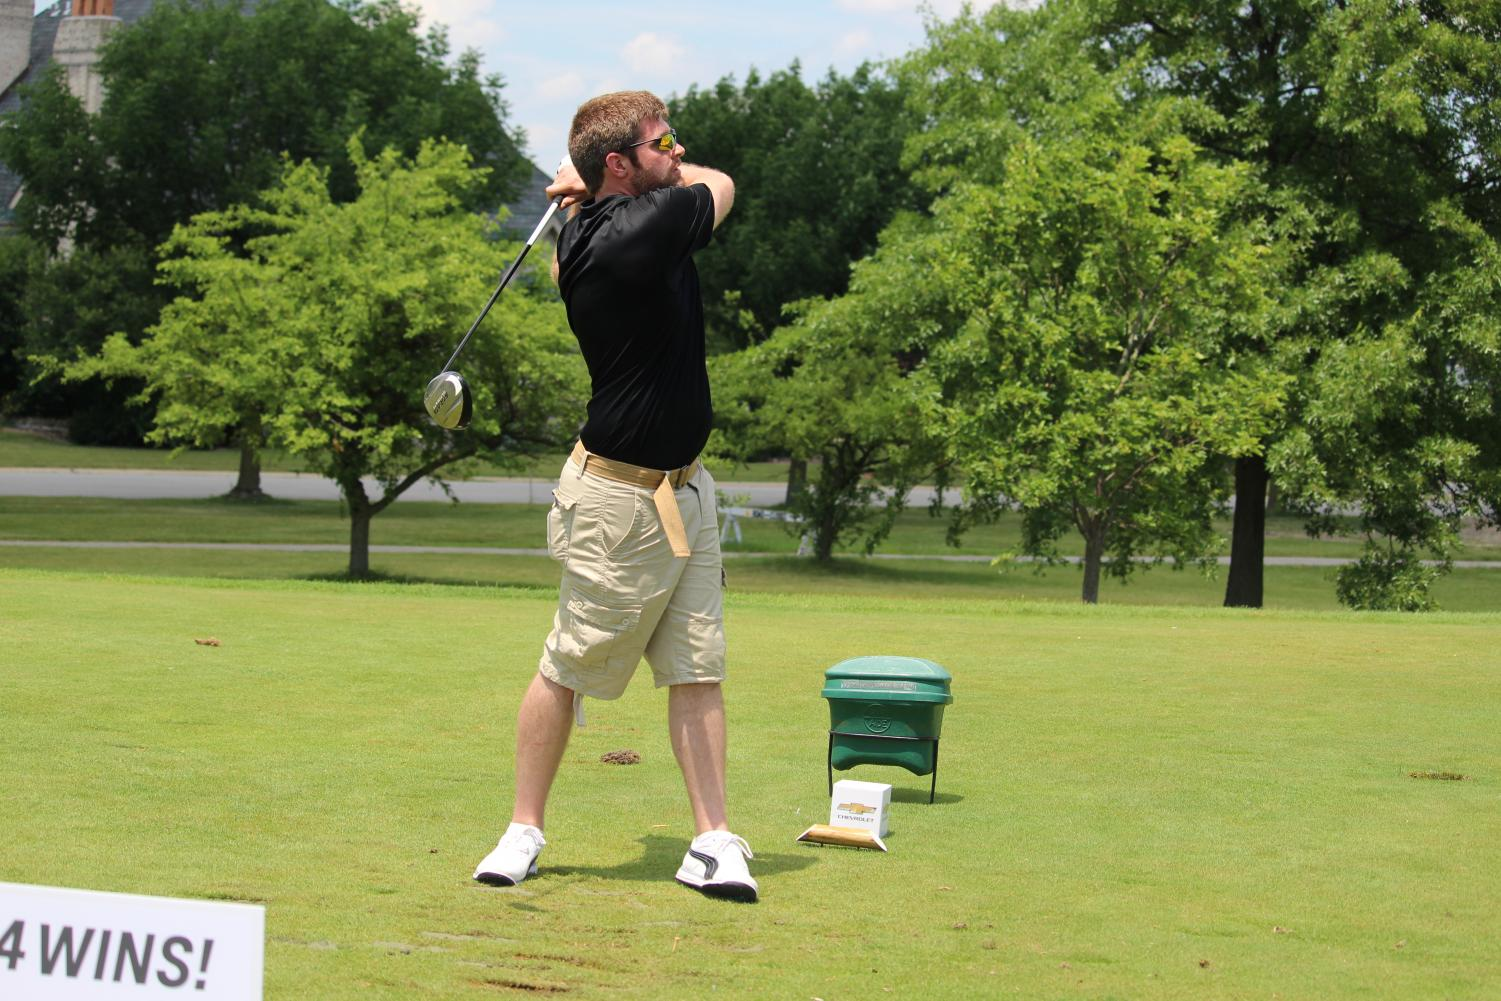 Michael Peterson, PNW information systems programmer, takes a swing at the outing.